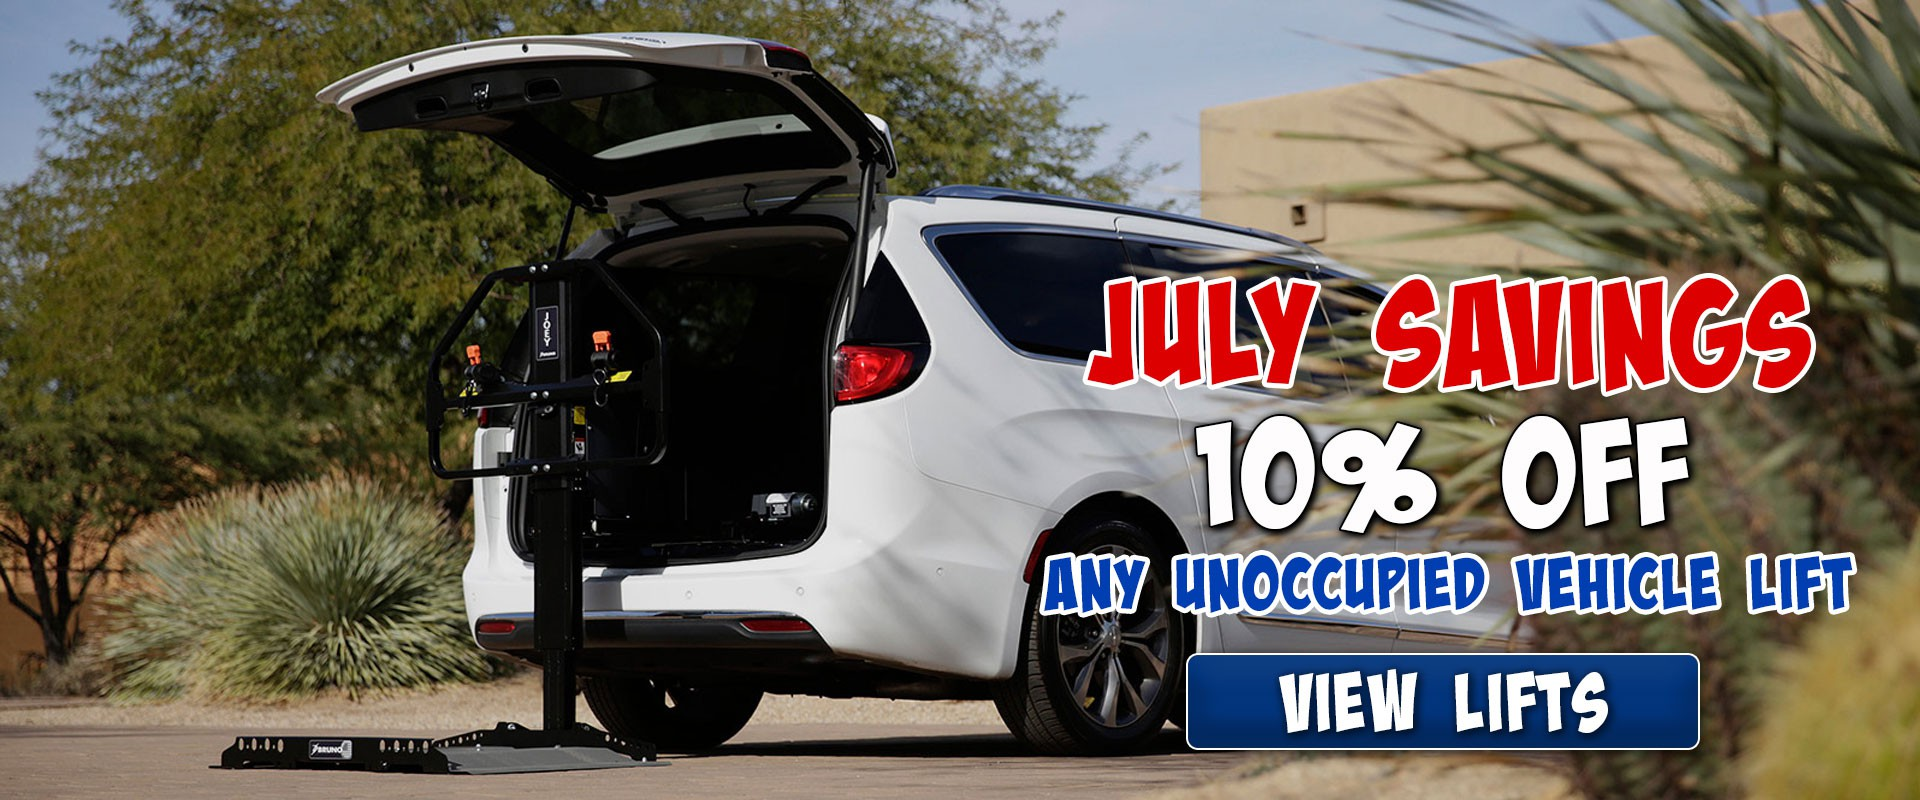 July Savings - 10% Off Any Unoccupied Vehicle Lift The Gulf Coast